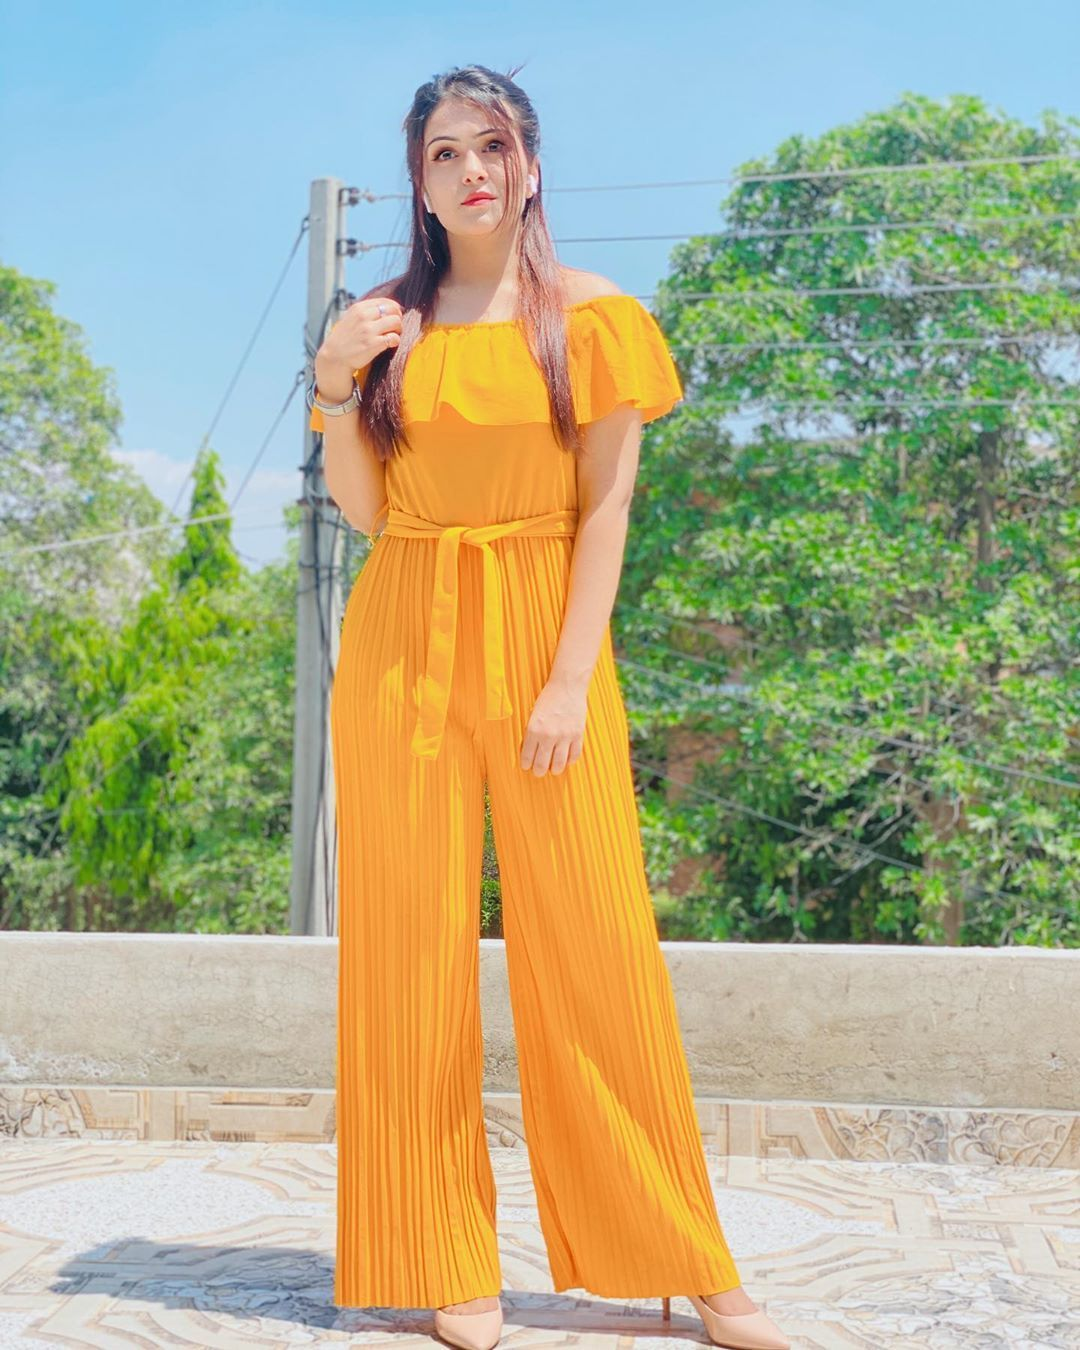 Pakistani Influencers' Jumpsuit Outfits You Can Steal